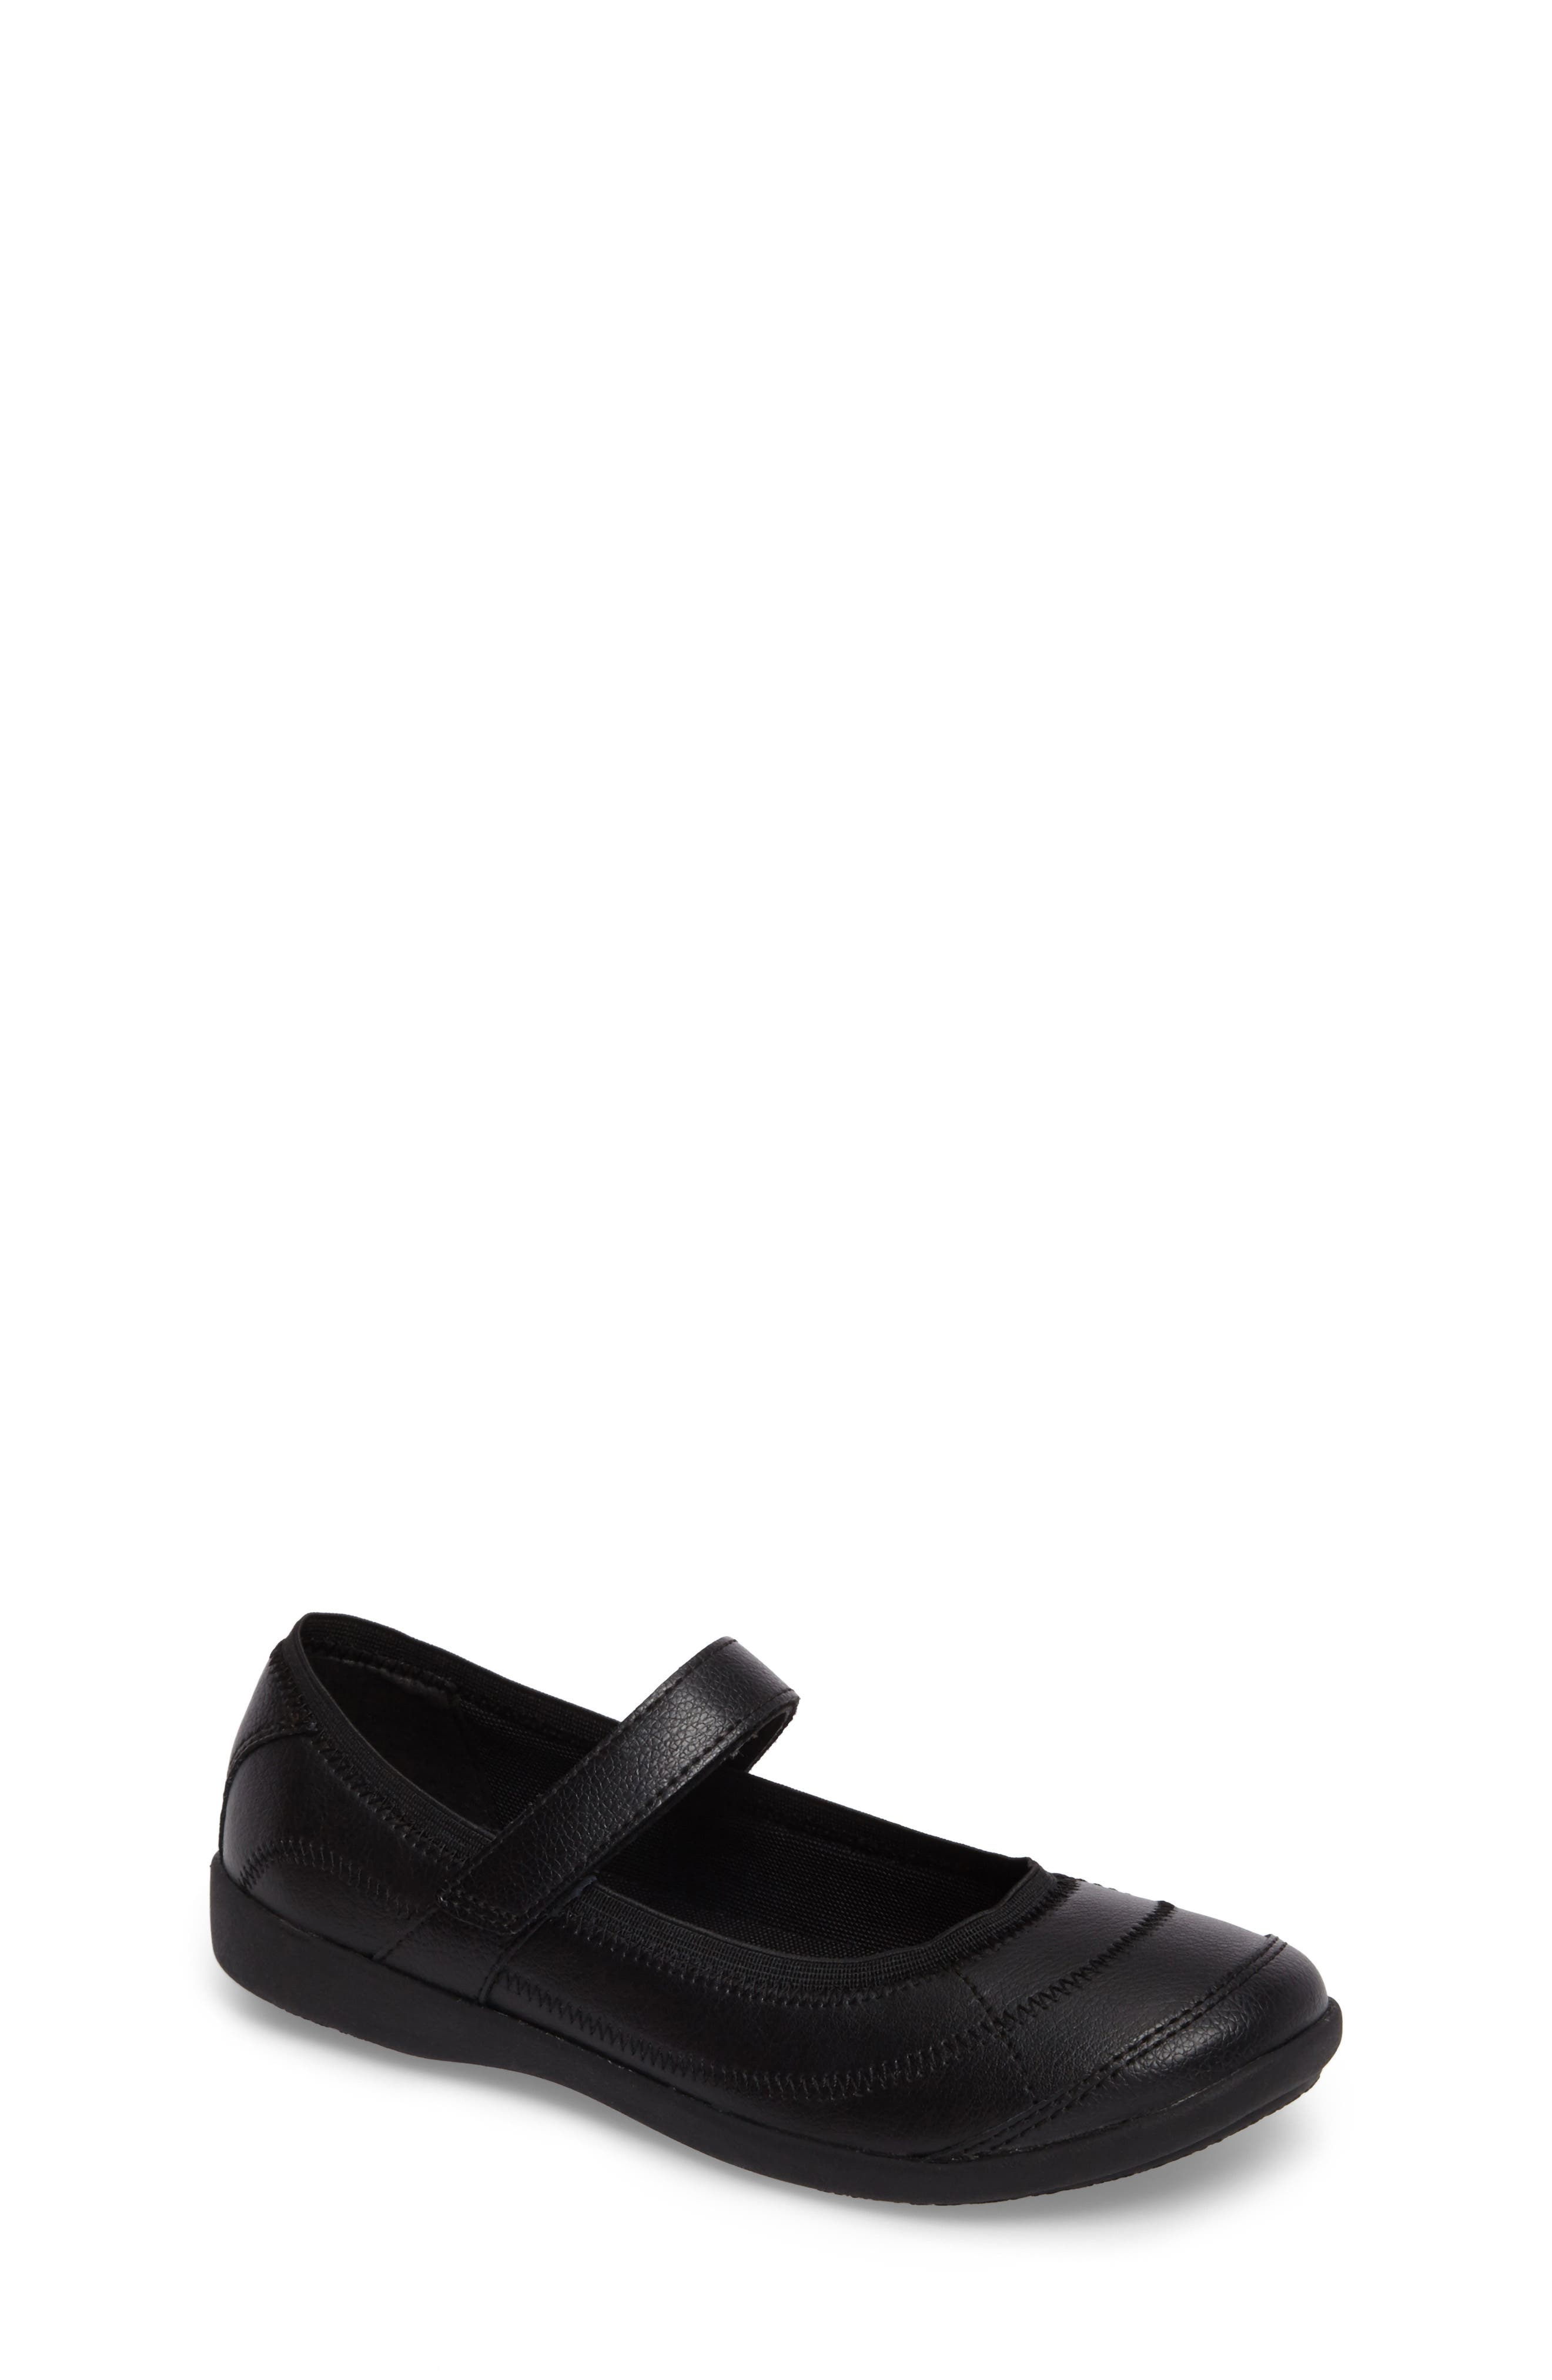 HUSH PUPPIES<SUP>®</SUP> Reese Mary Jane Flat, Main, color, BLACK LEATHER